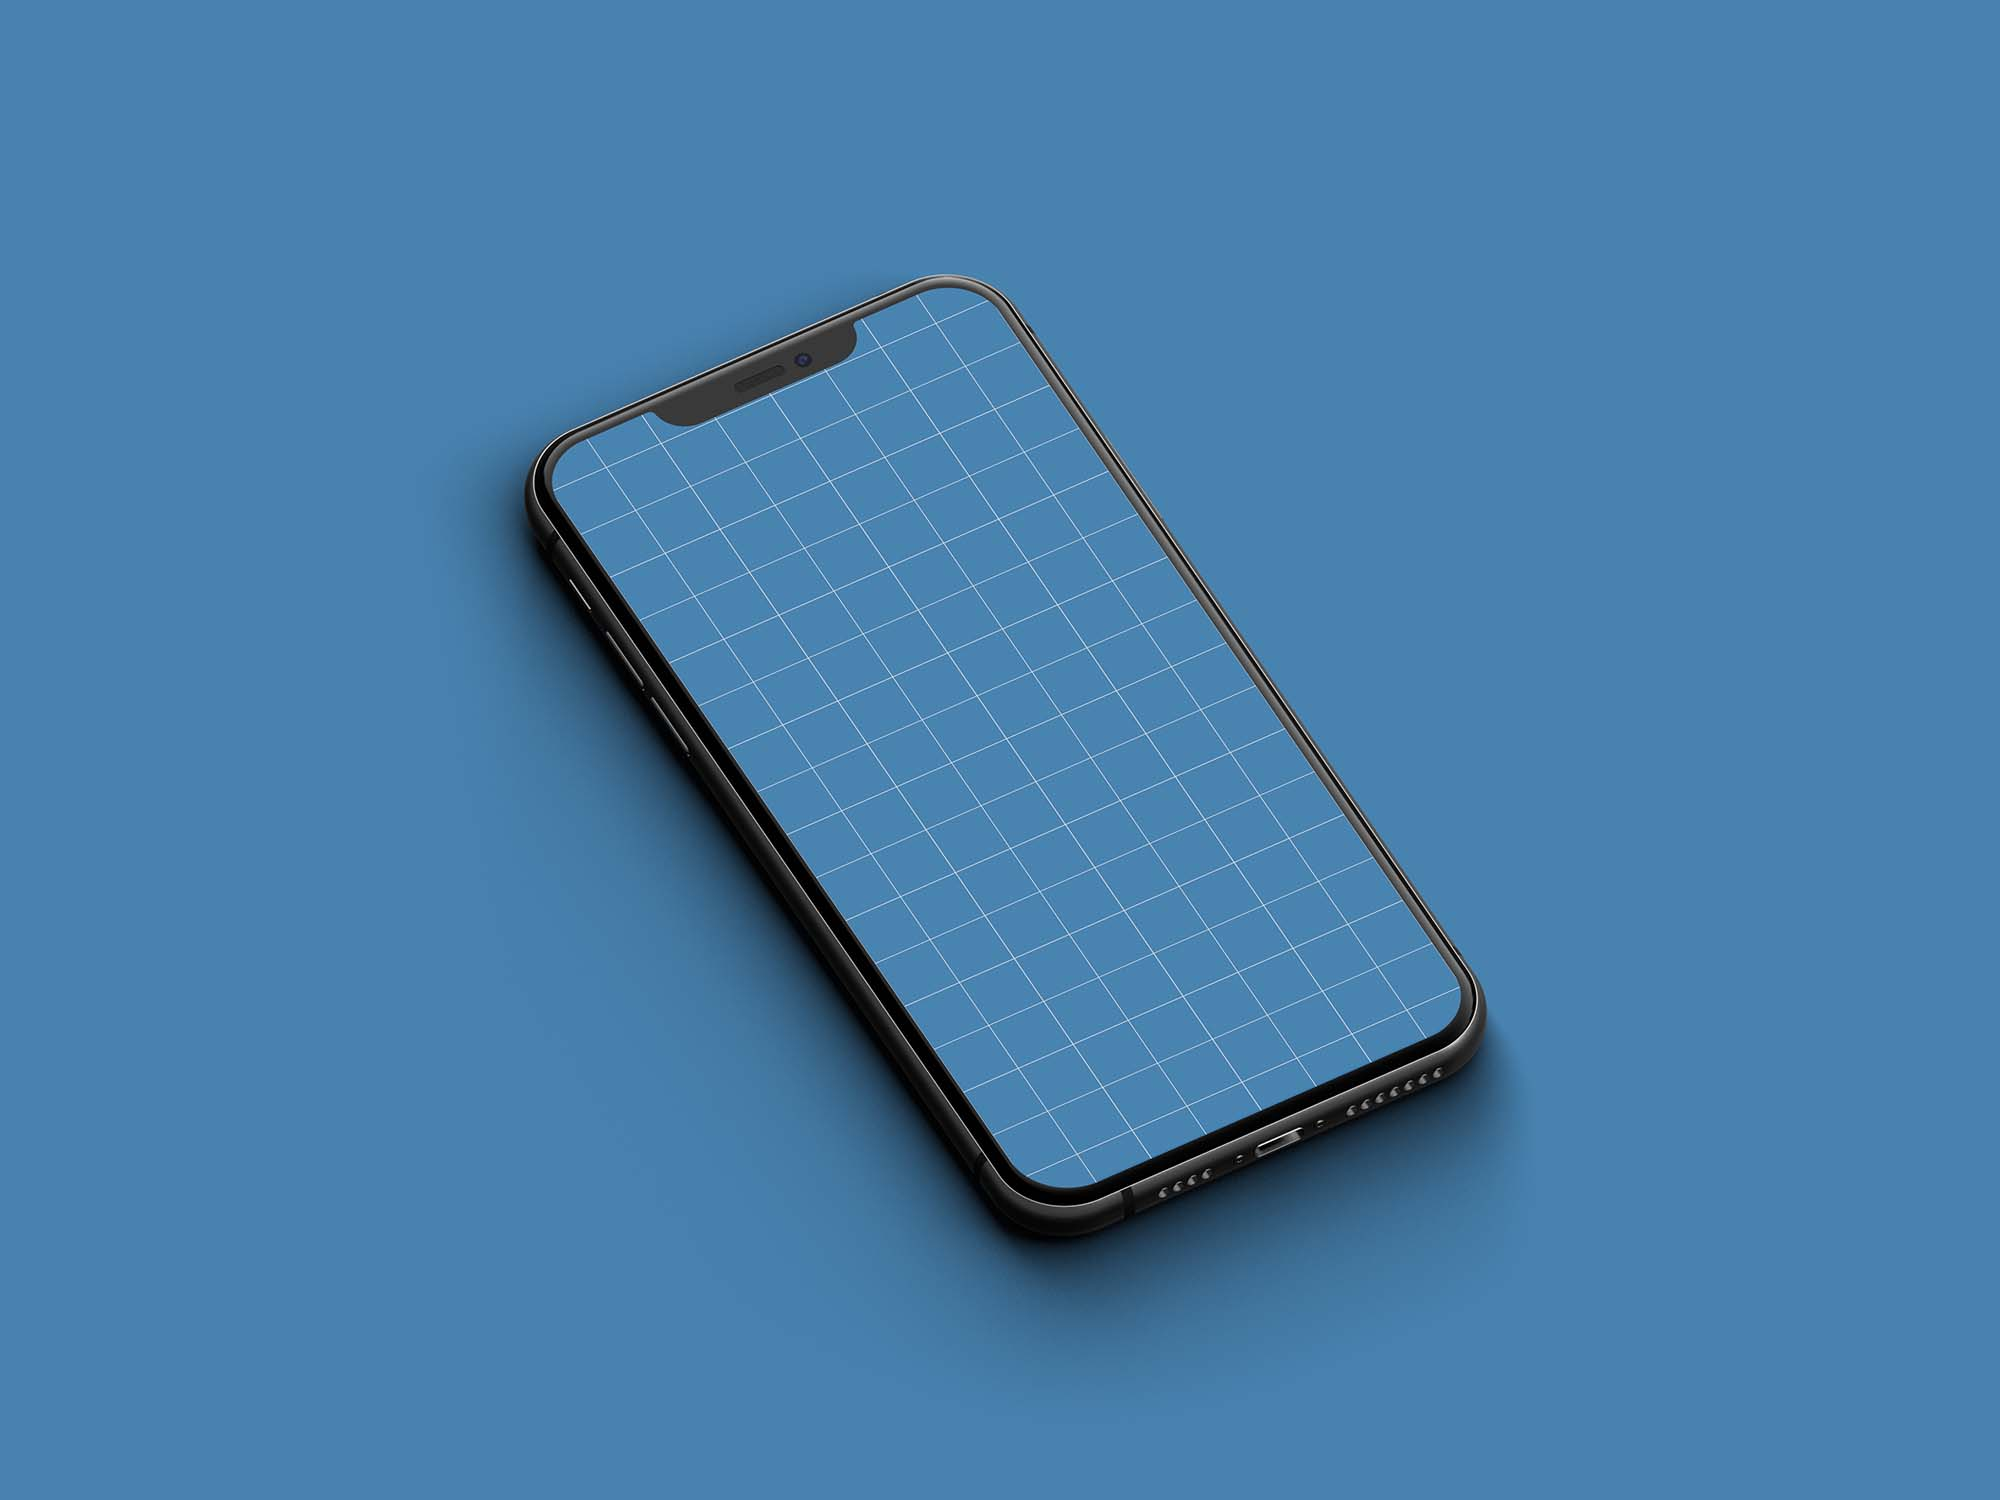 Isometric iPhone 11 Pro Mockup 2